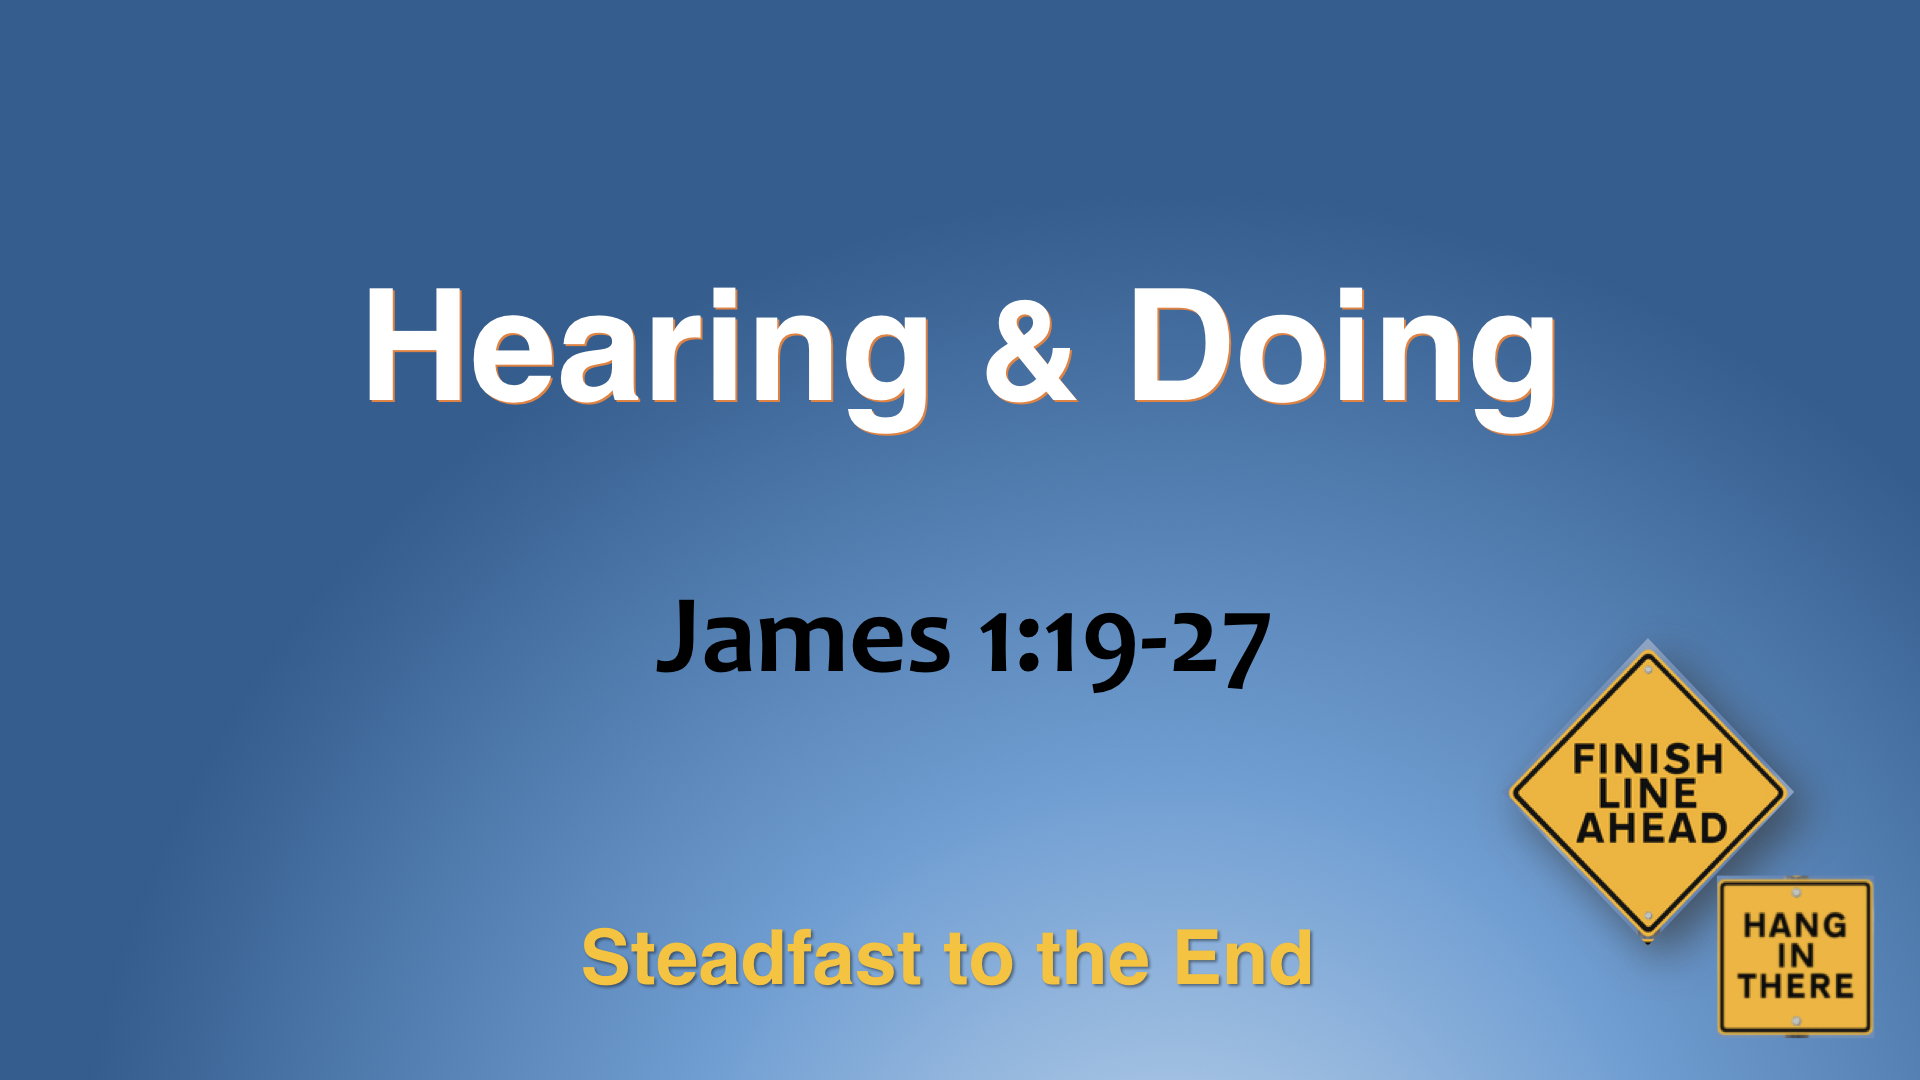 6-Hearing & Doing.001.jpeg